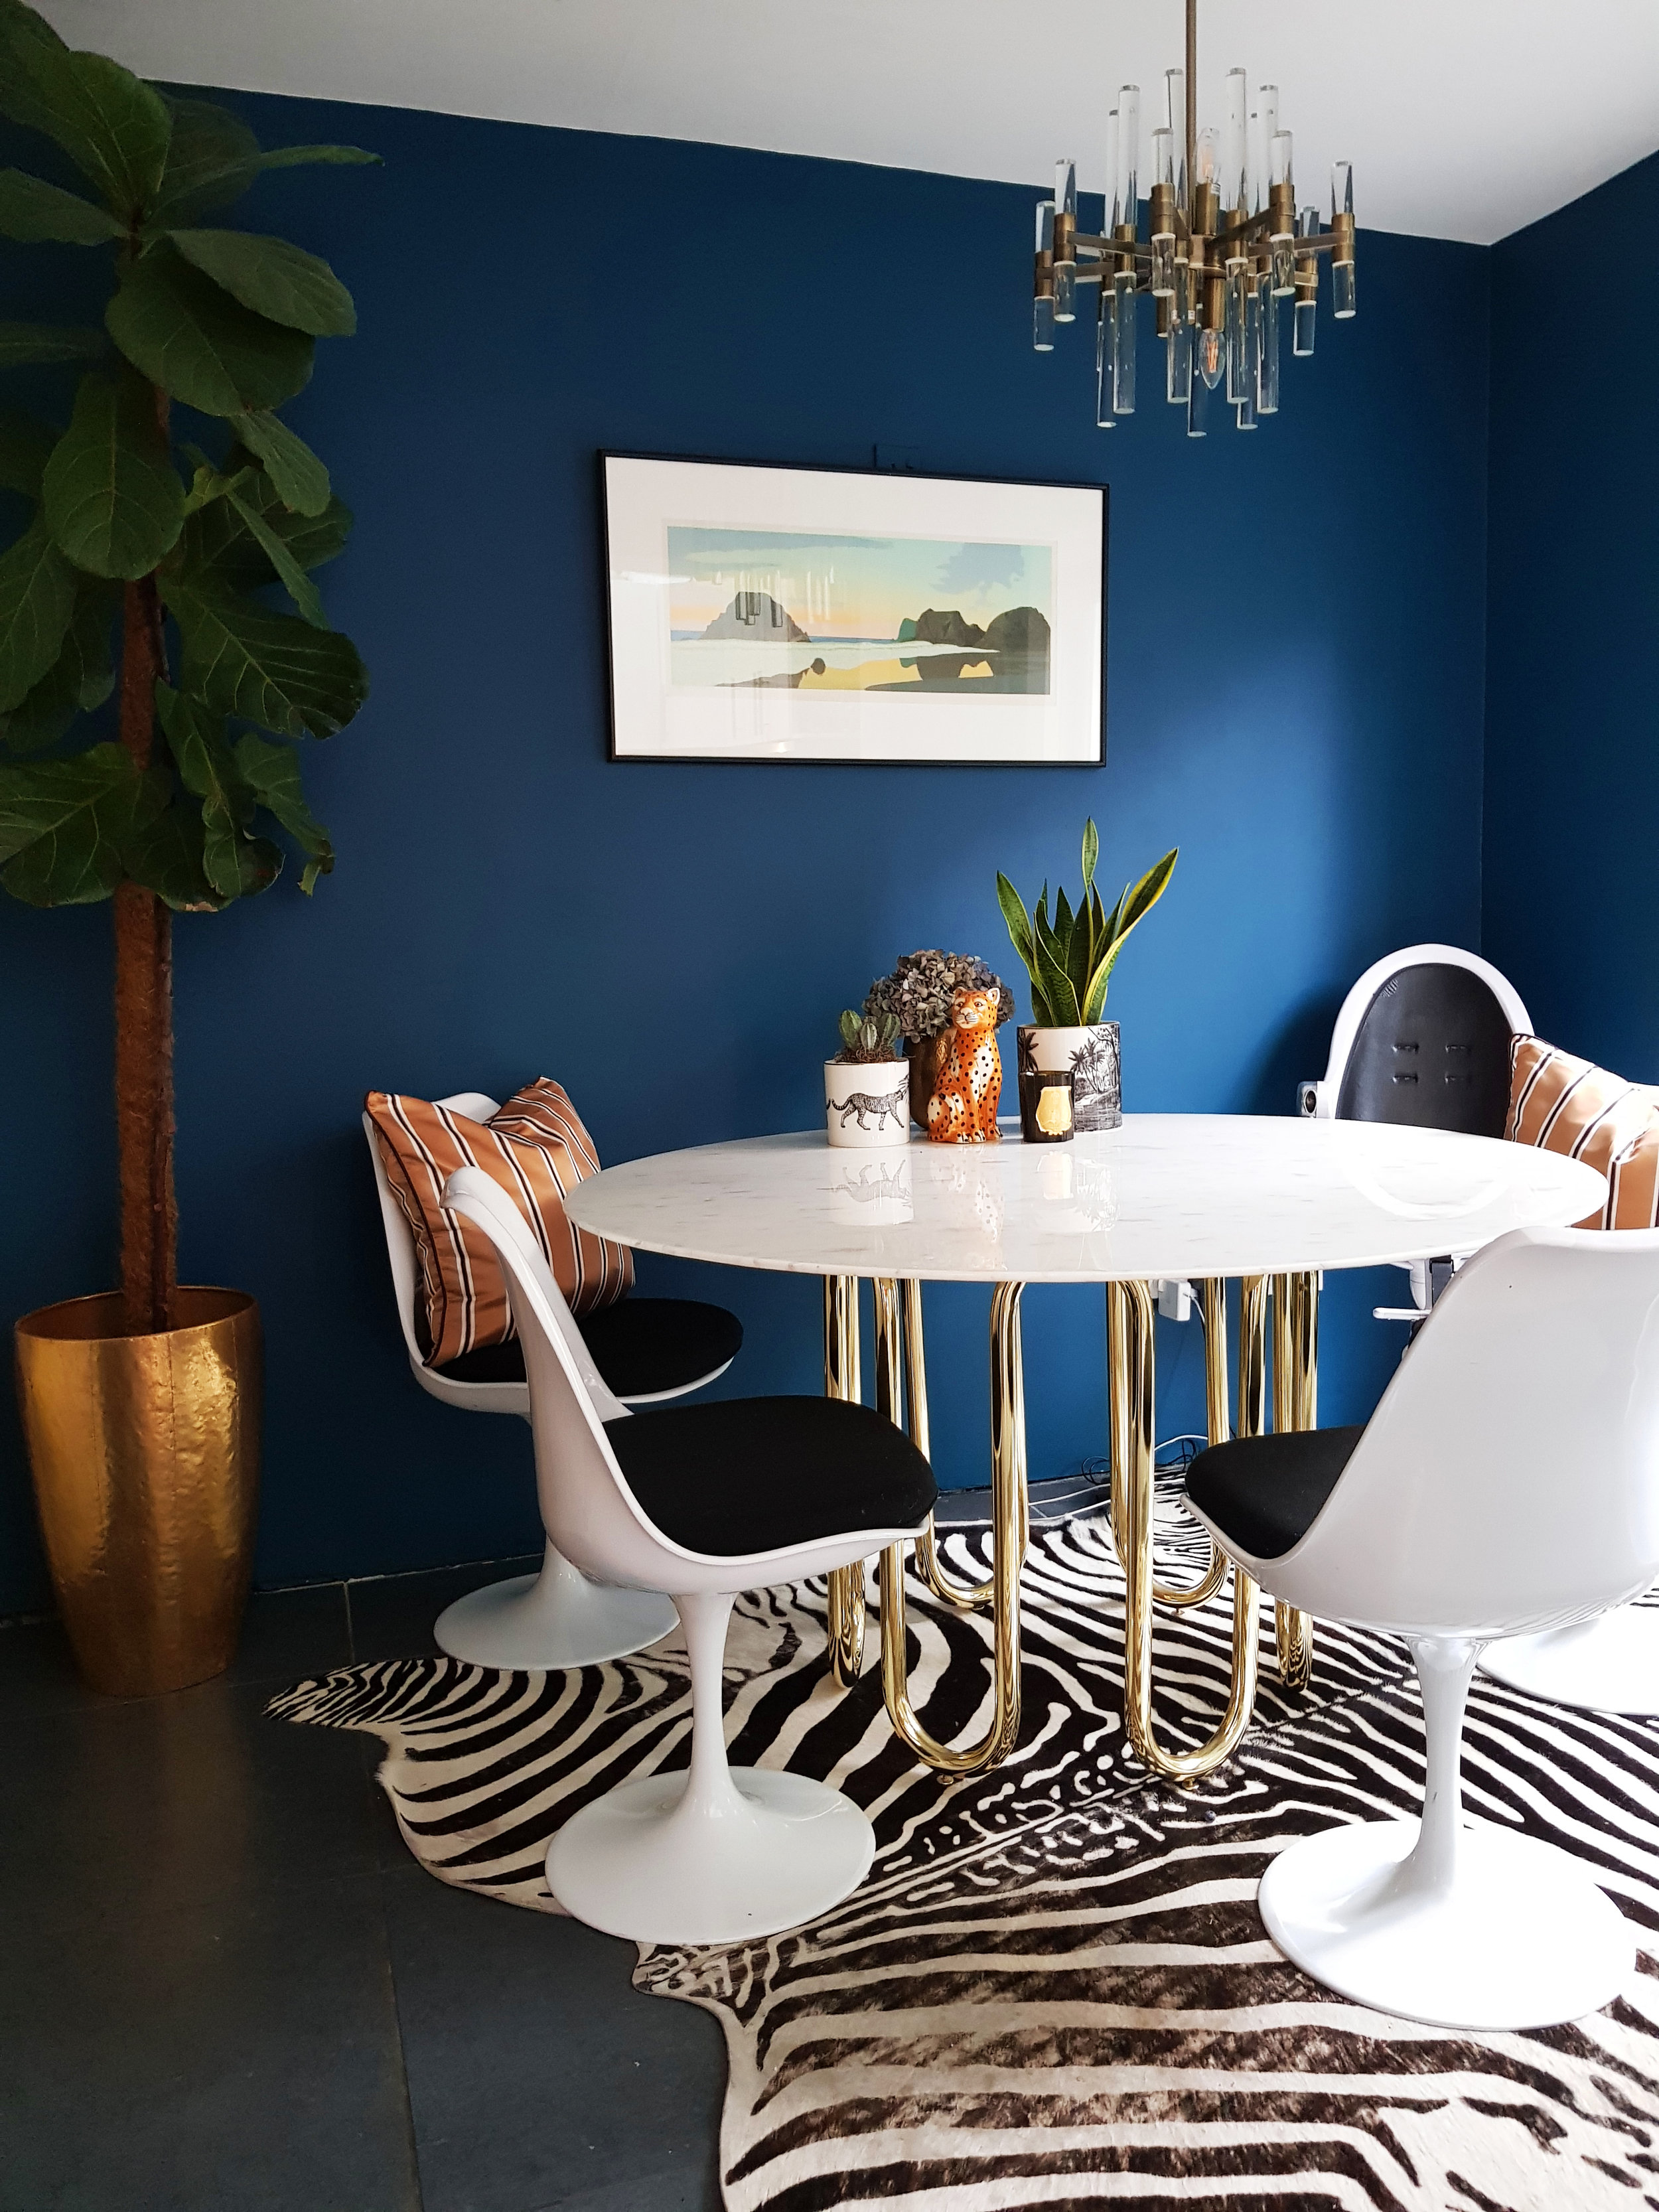 In the dining room, a  Jonathan Adler  Scalinatella dining table in Carrera marble and brass is paired with Eero Saarinen Tulip chairs with Danish wool seat.